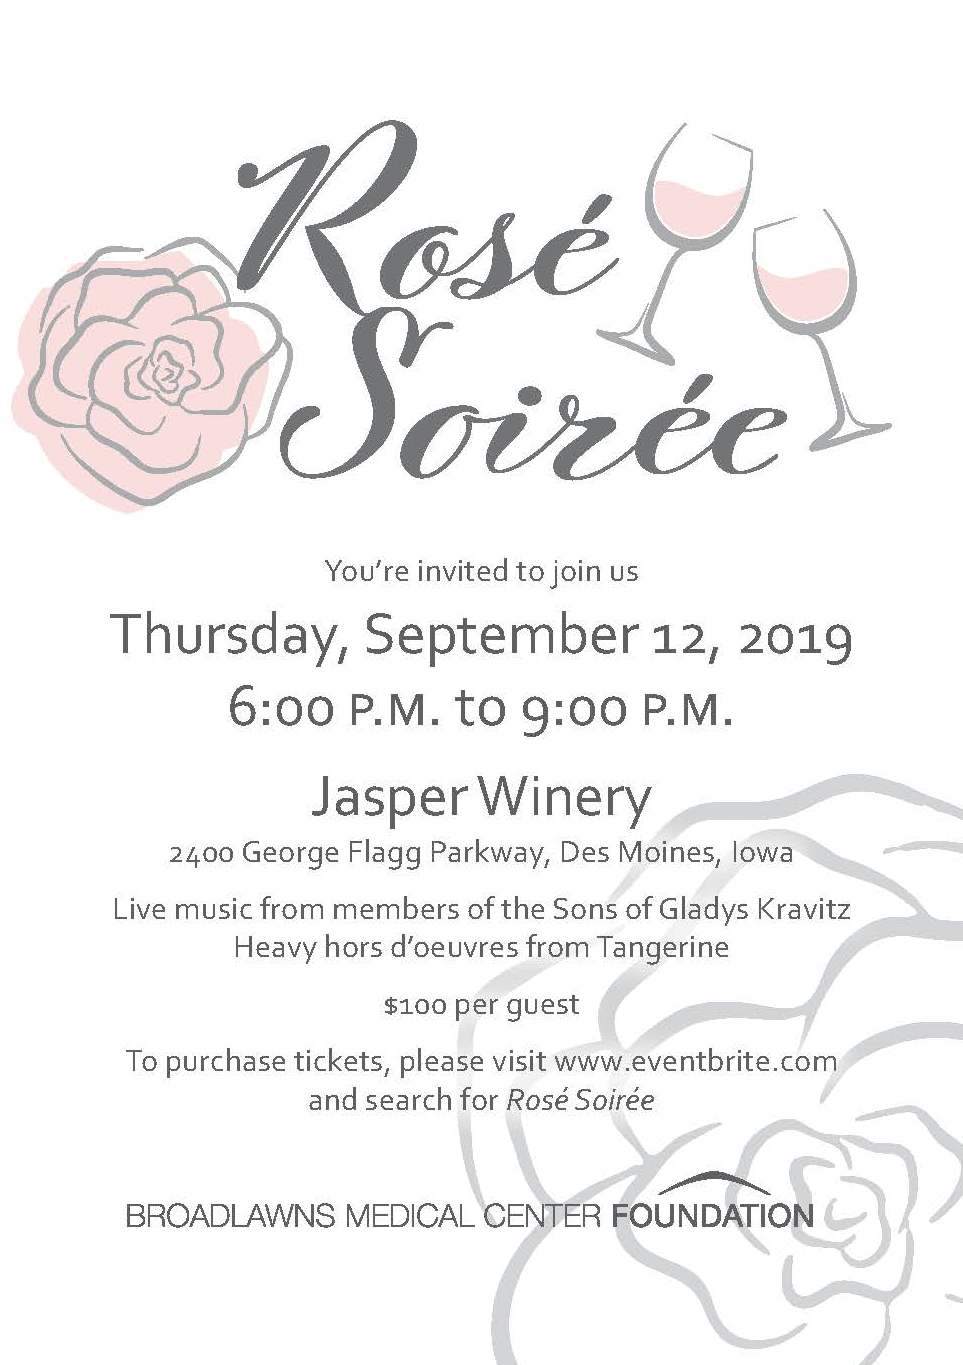 Rose Soiree invitation